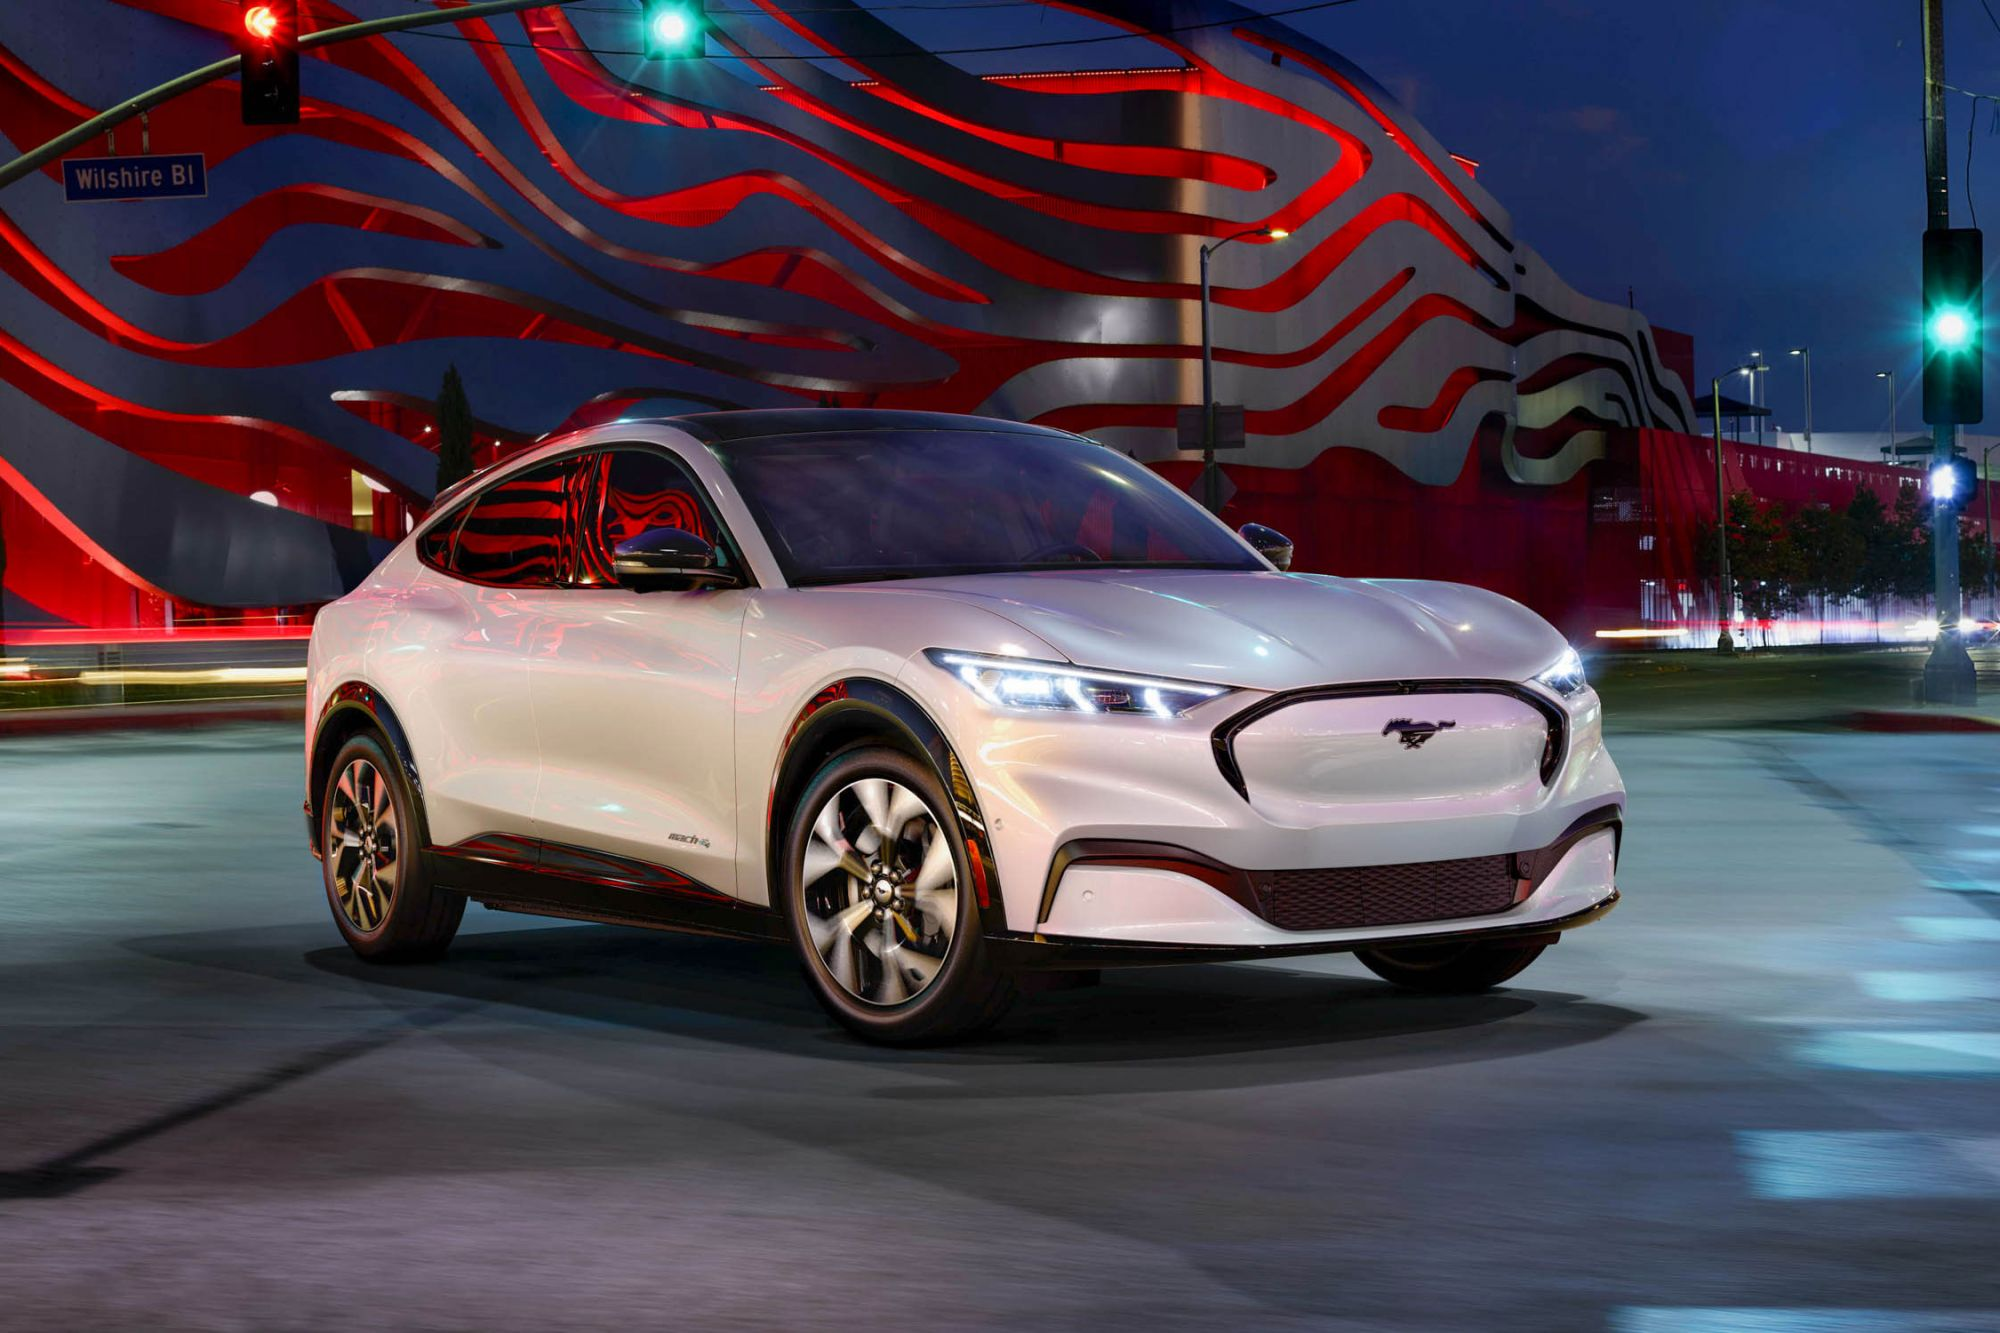 Half the Car Ads at the Super Bowl Were for Electric Vehicles. But They Made Up Less Than 2% of Car Sales Last Year.